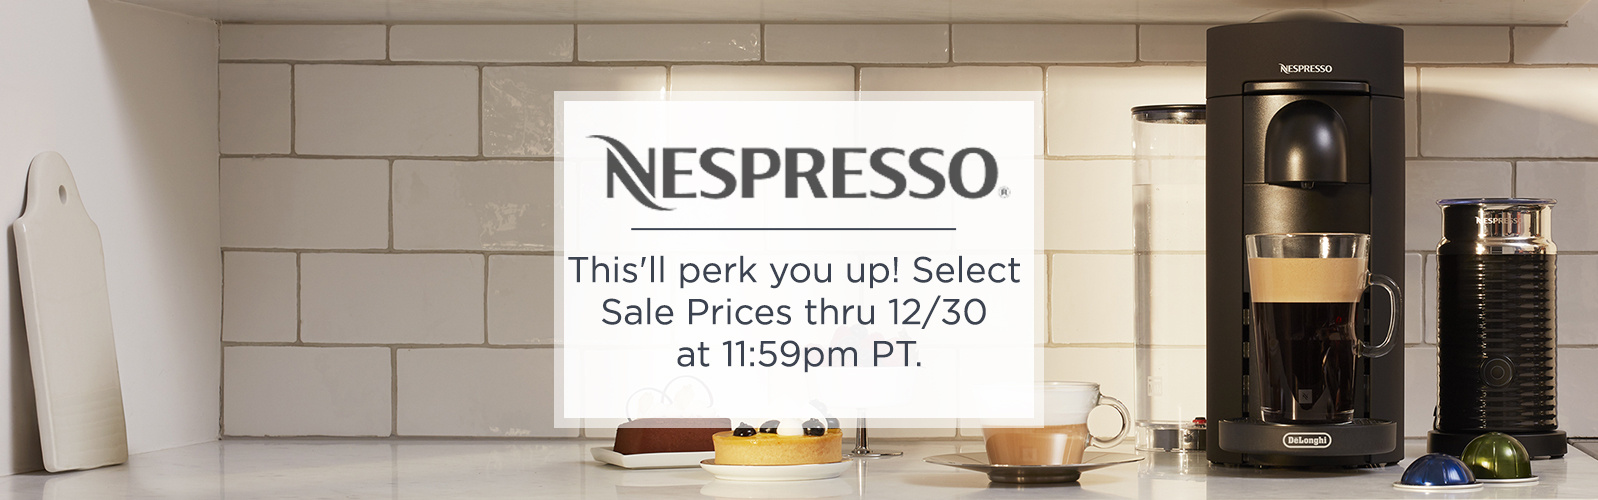 Nespresso - This'll perk you up! Select Sale Prices thru 12/30 at 11:59pm PT.